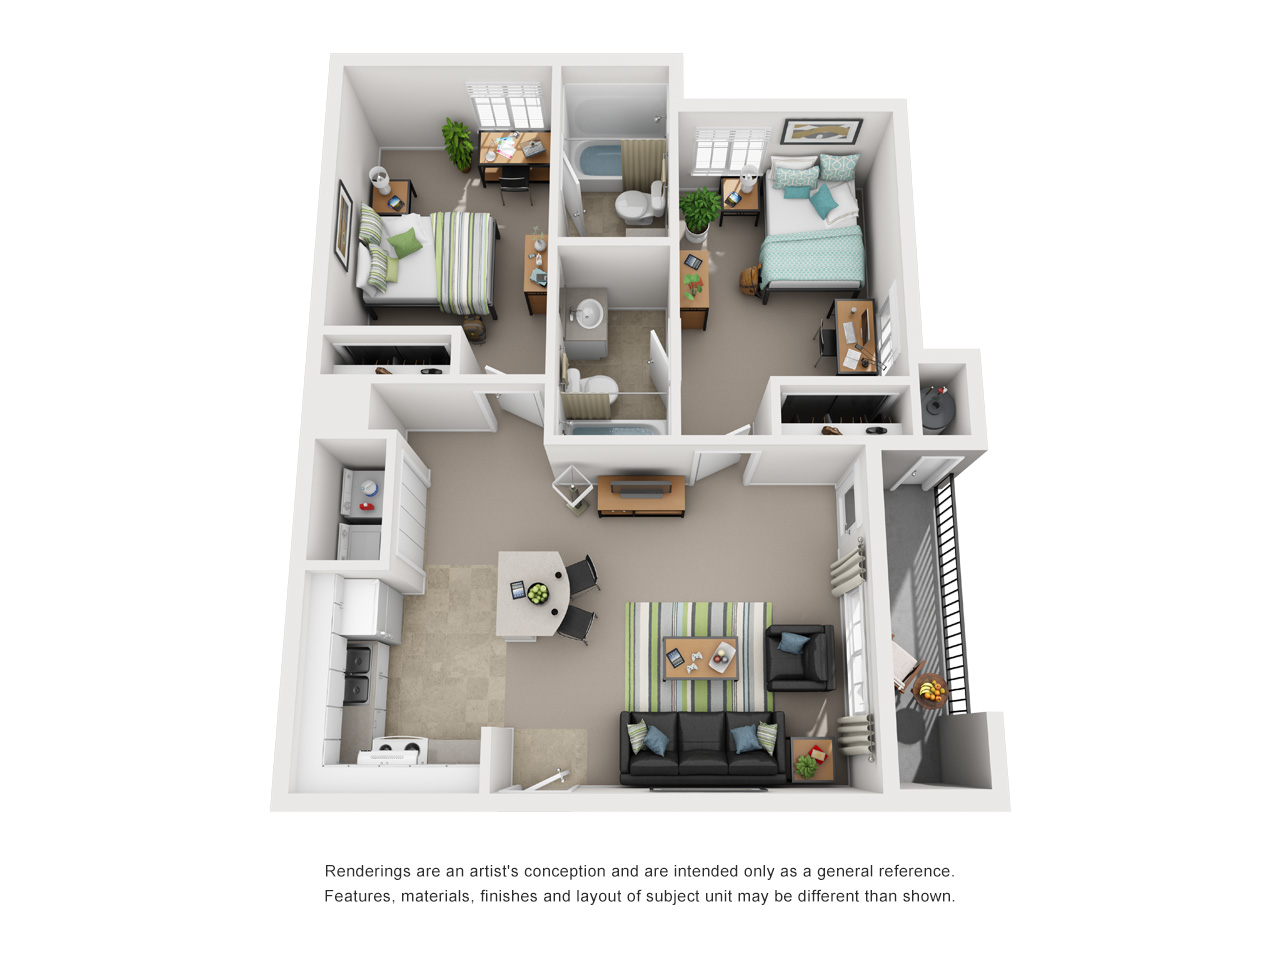 Floor plan of 2 bed, 2 bath student apartment